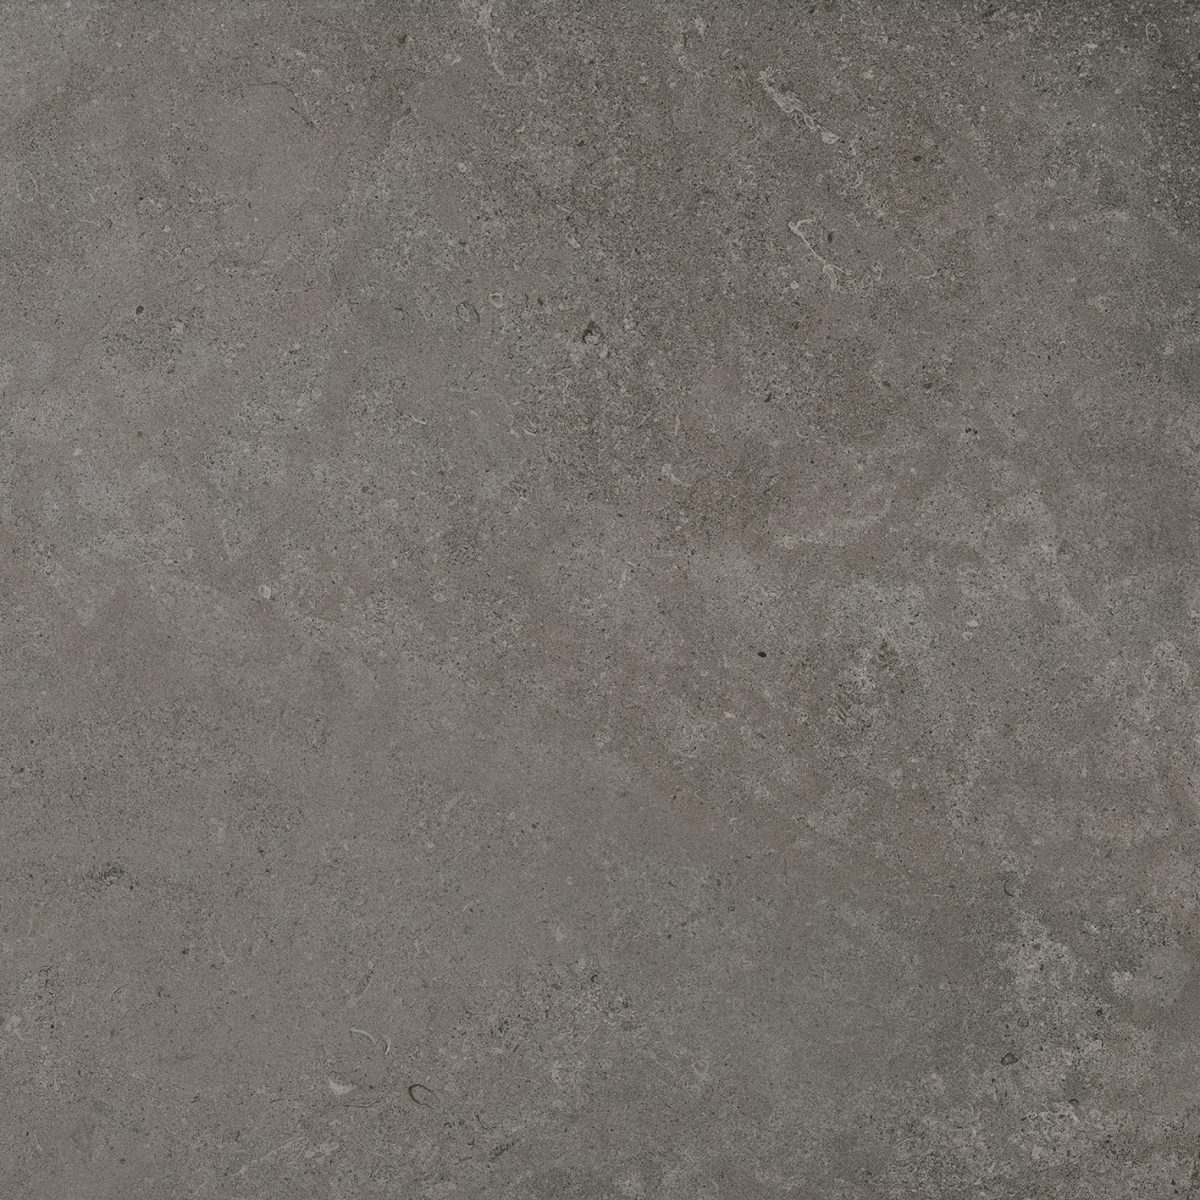 Porcelanosa Mosa-River Grey Anti-Slip Tile 120 x 120 cm